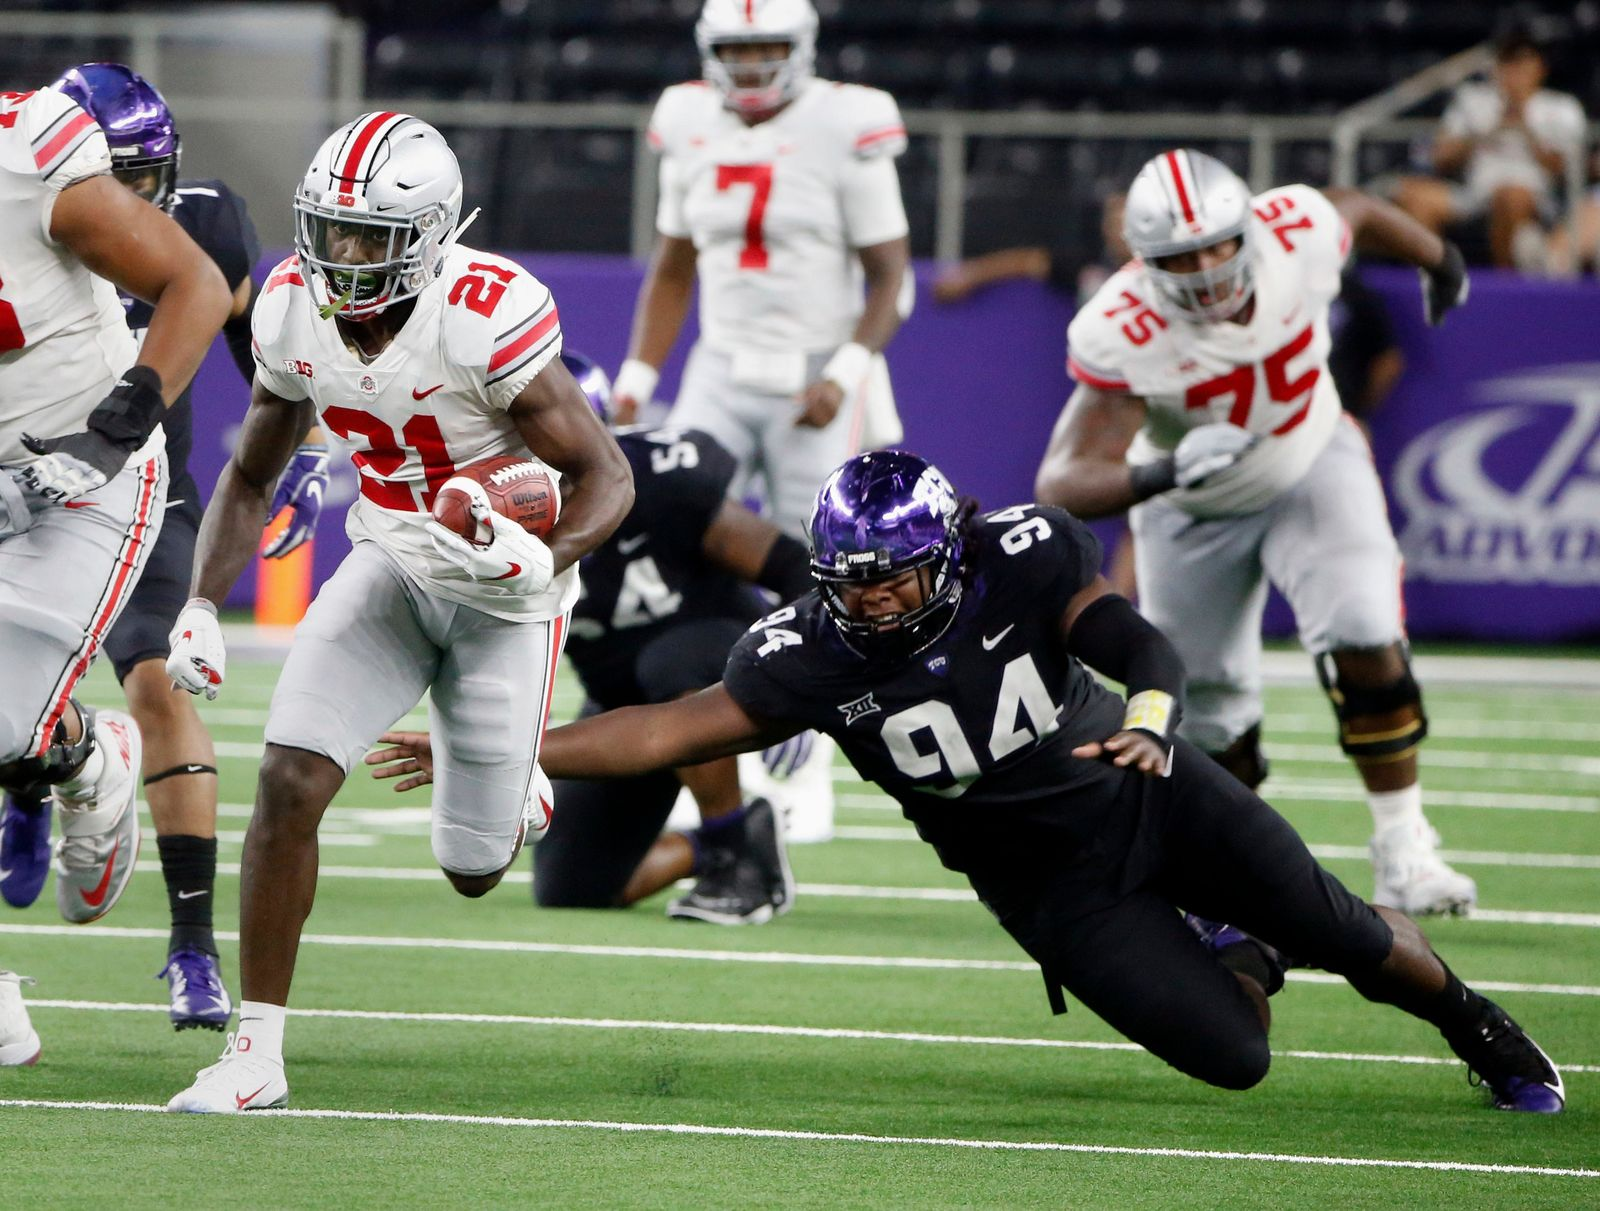 Ohio State wide receiver Parris Campbell (21) runs for a touchdown as TCU defensive tackle Corey Bethley (94) fails on a tackle attempt during the second half of an NCAA college football game in Arlington, Texas, Saturday, Sept. 15, 2018. (AP Photo/Michael Ainsworth)